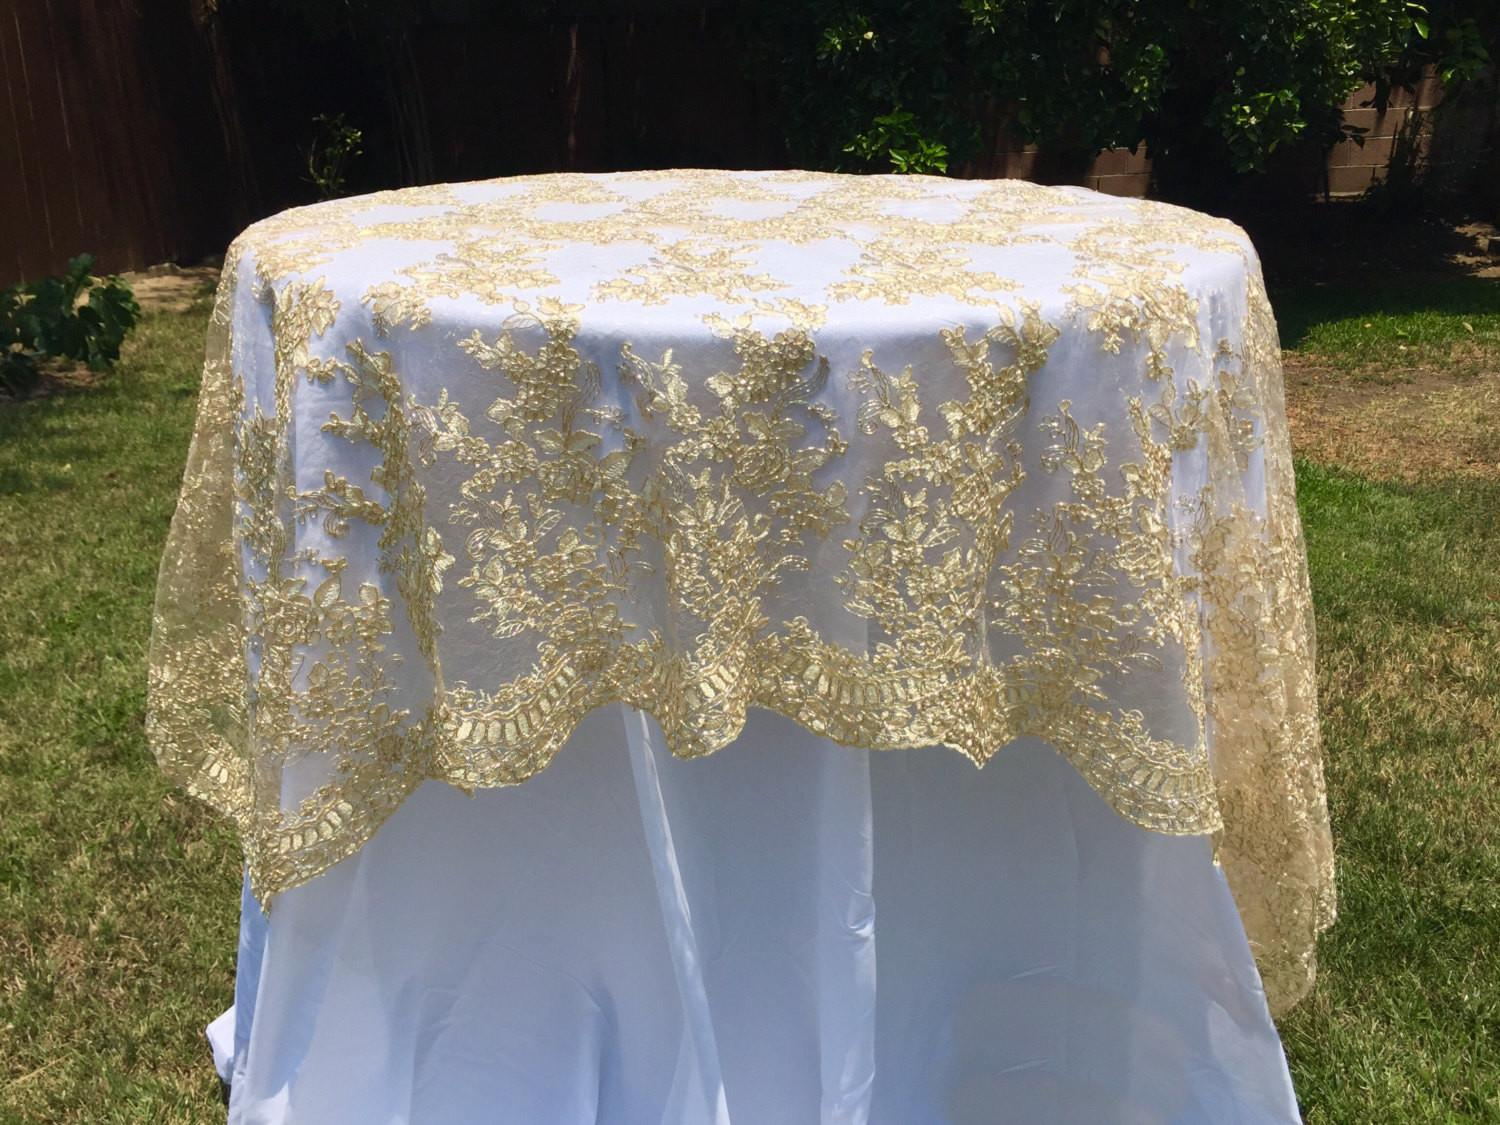 Sale Gold Embroidered Lace Table Runner Tablecloth